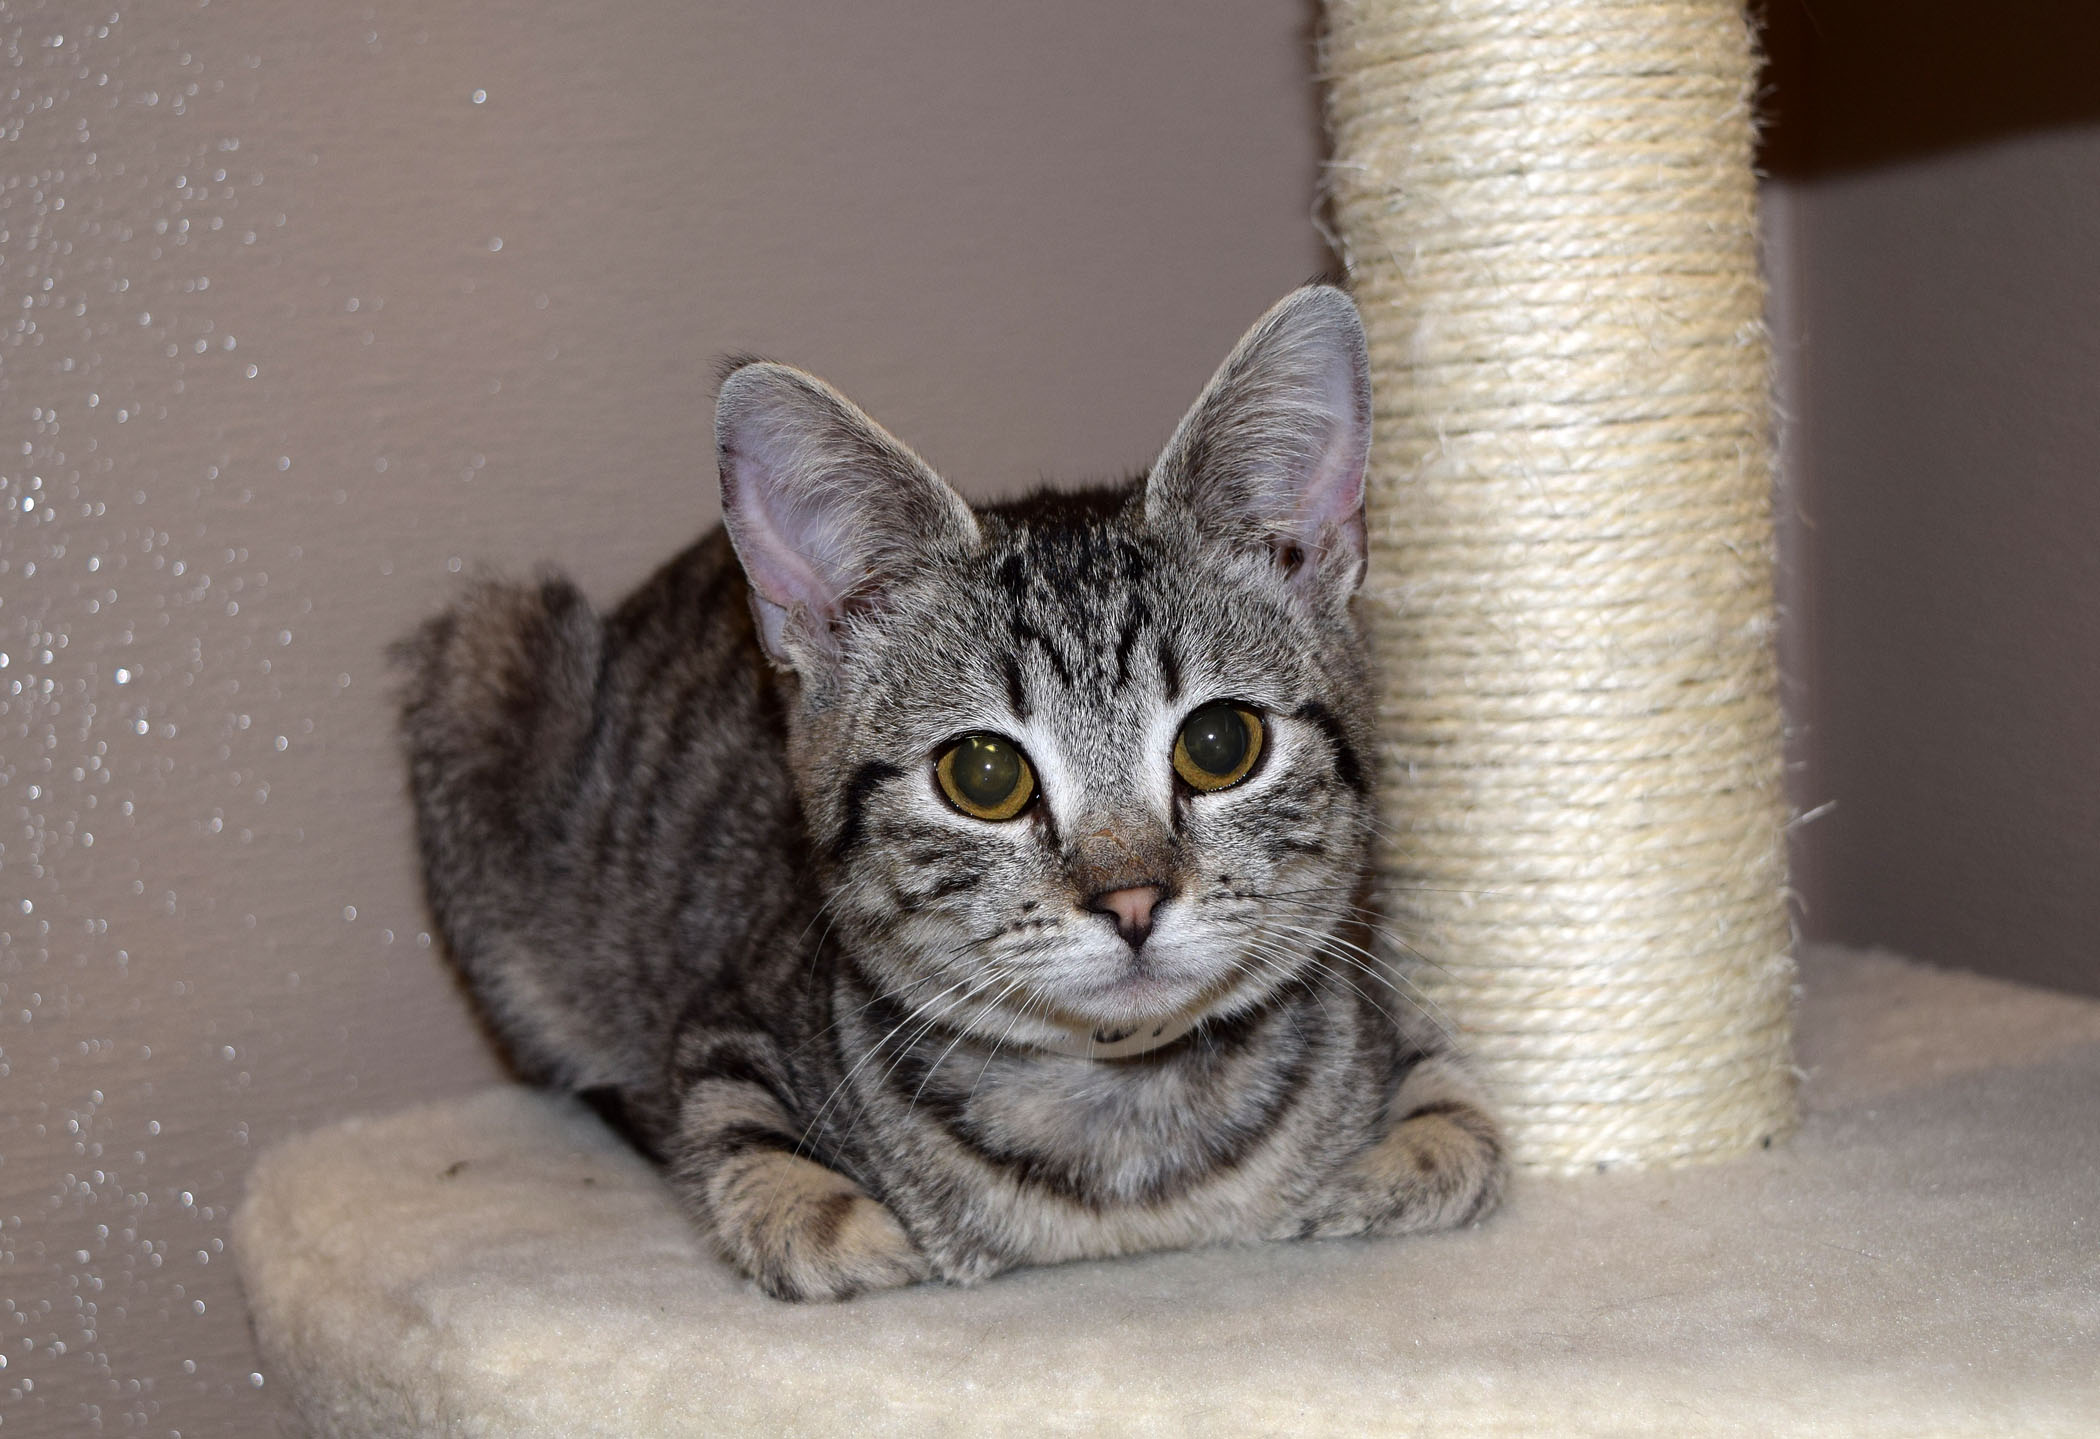 day-2-tabby-kitten-hsco-org